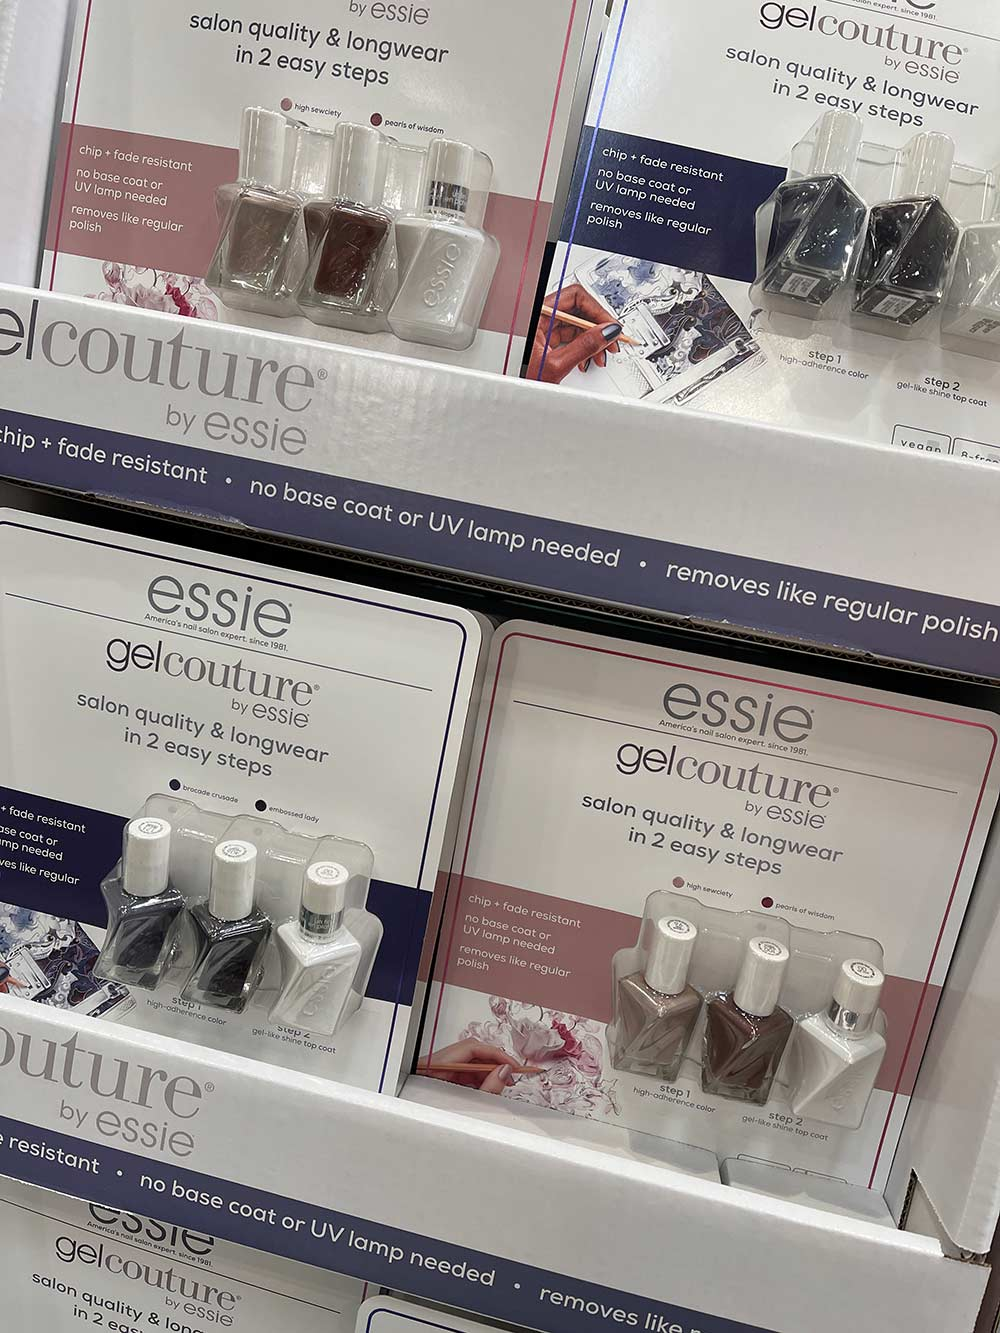 essie gel couture costco